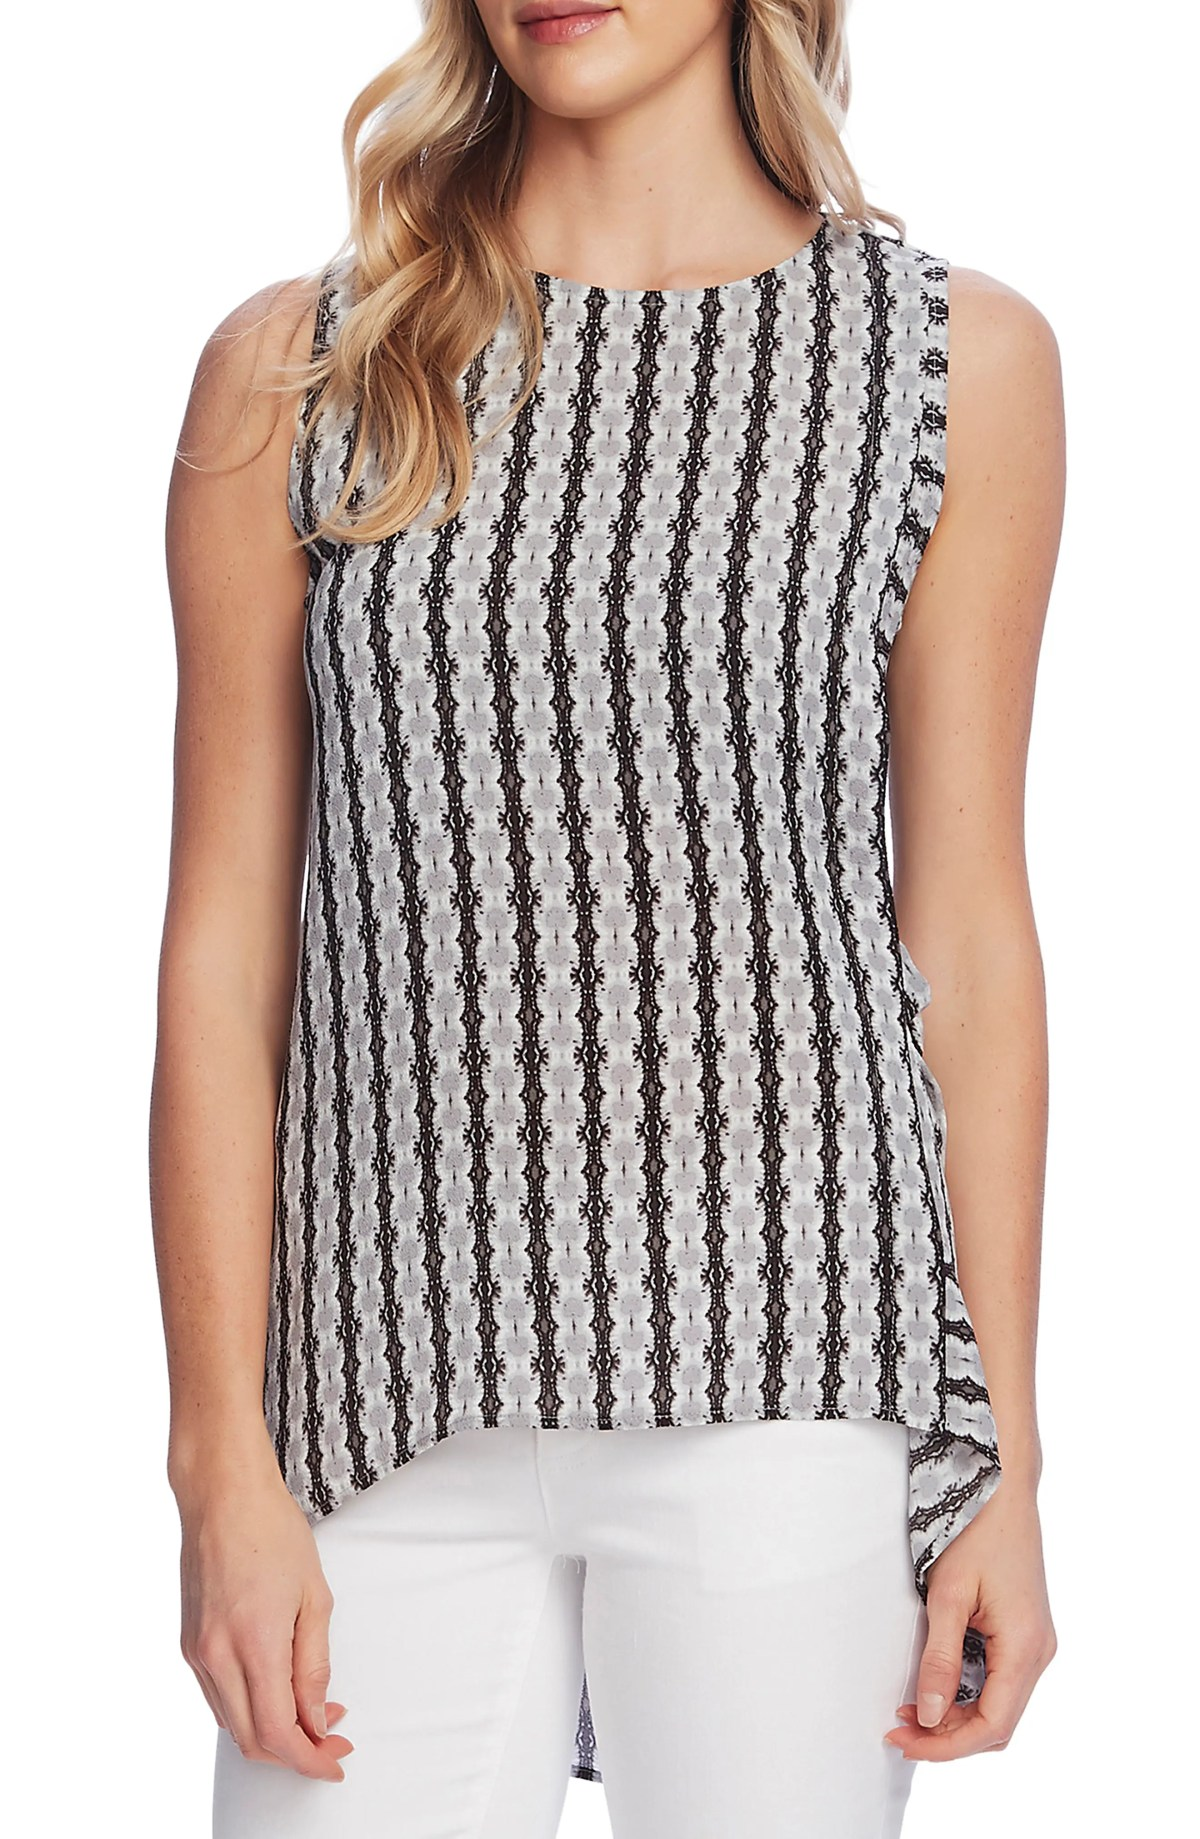 VINCE CAMUTO Starburst Stripe Side Tie High Low Sleeveless Top, Main, color, RICH BLACK